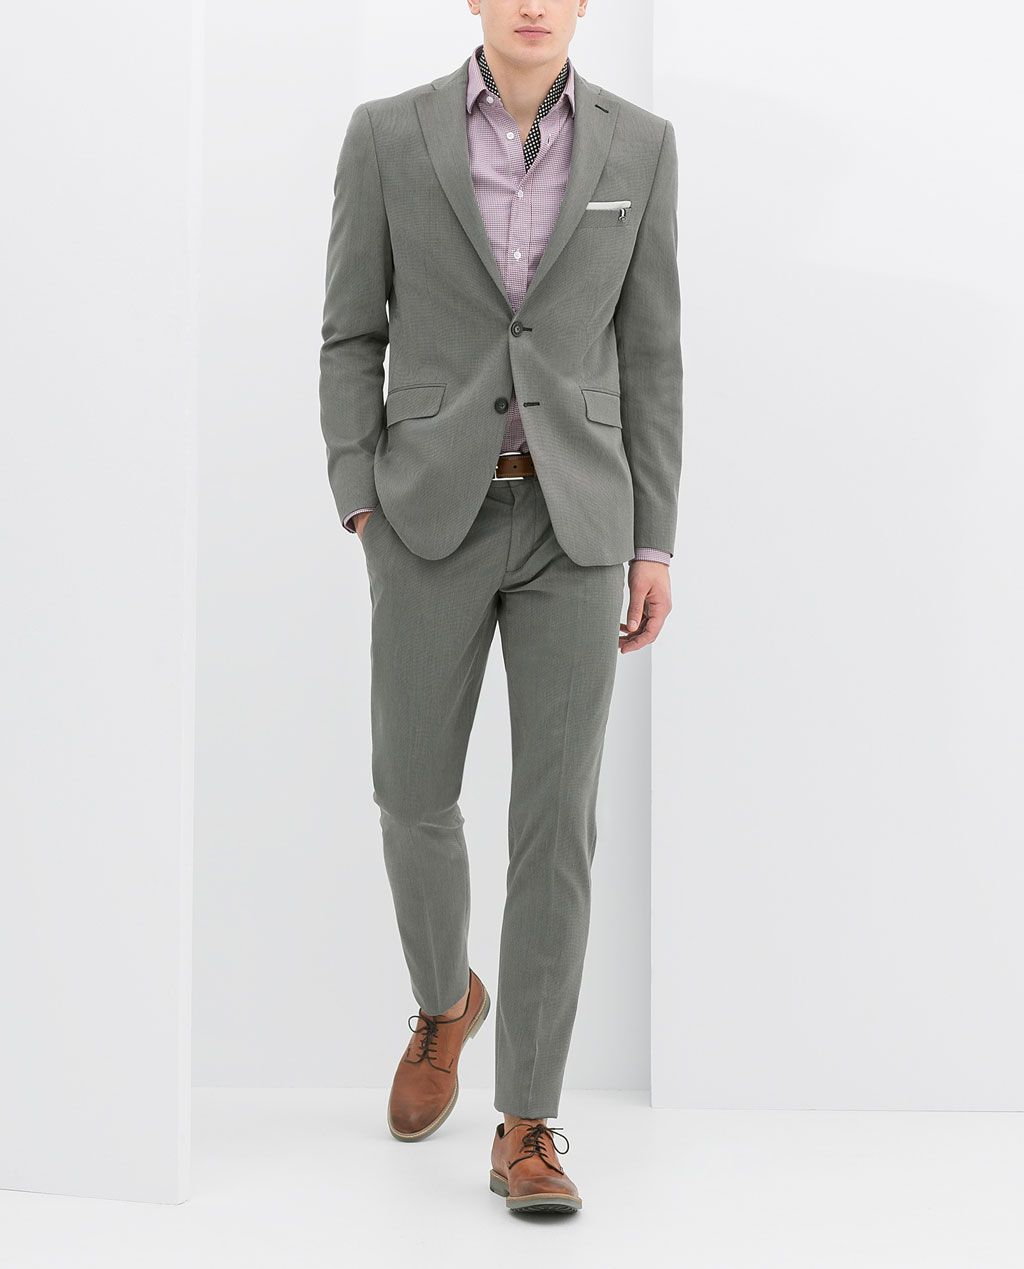 Image 1 Of GREY SUIT From Zara $170 Jacket, $80 Pants